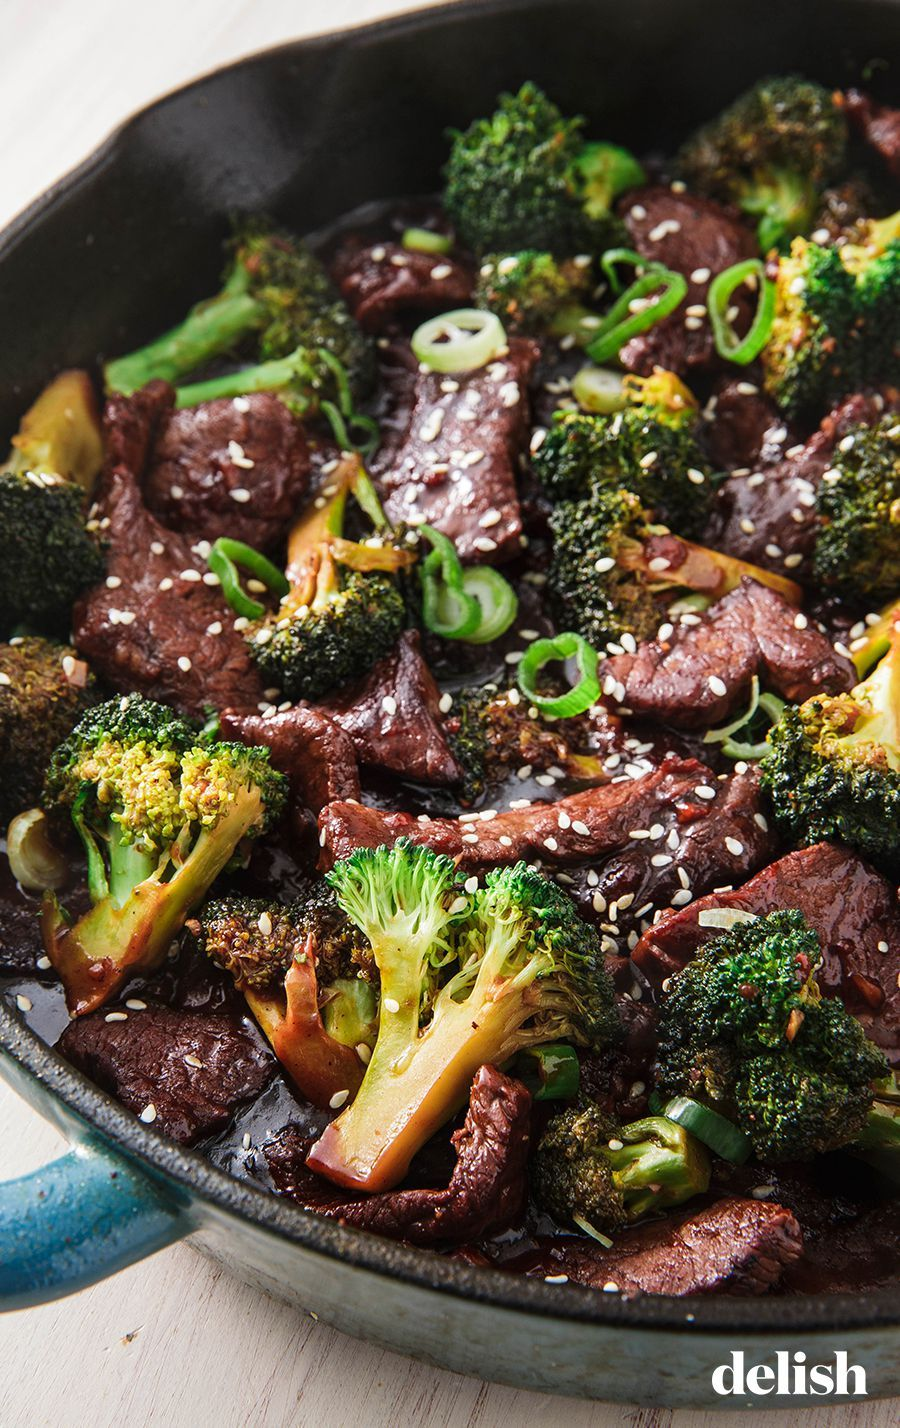 75+ Cheap And Easy Dinner Recipes So You Never Have To Cook A Boring Meal Again #beefandbroccoli